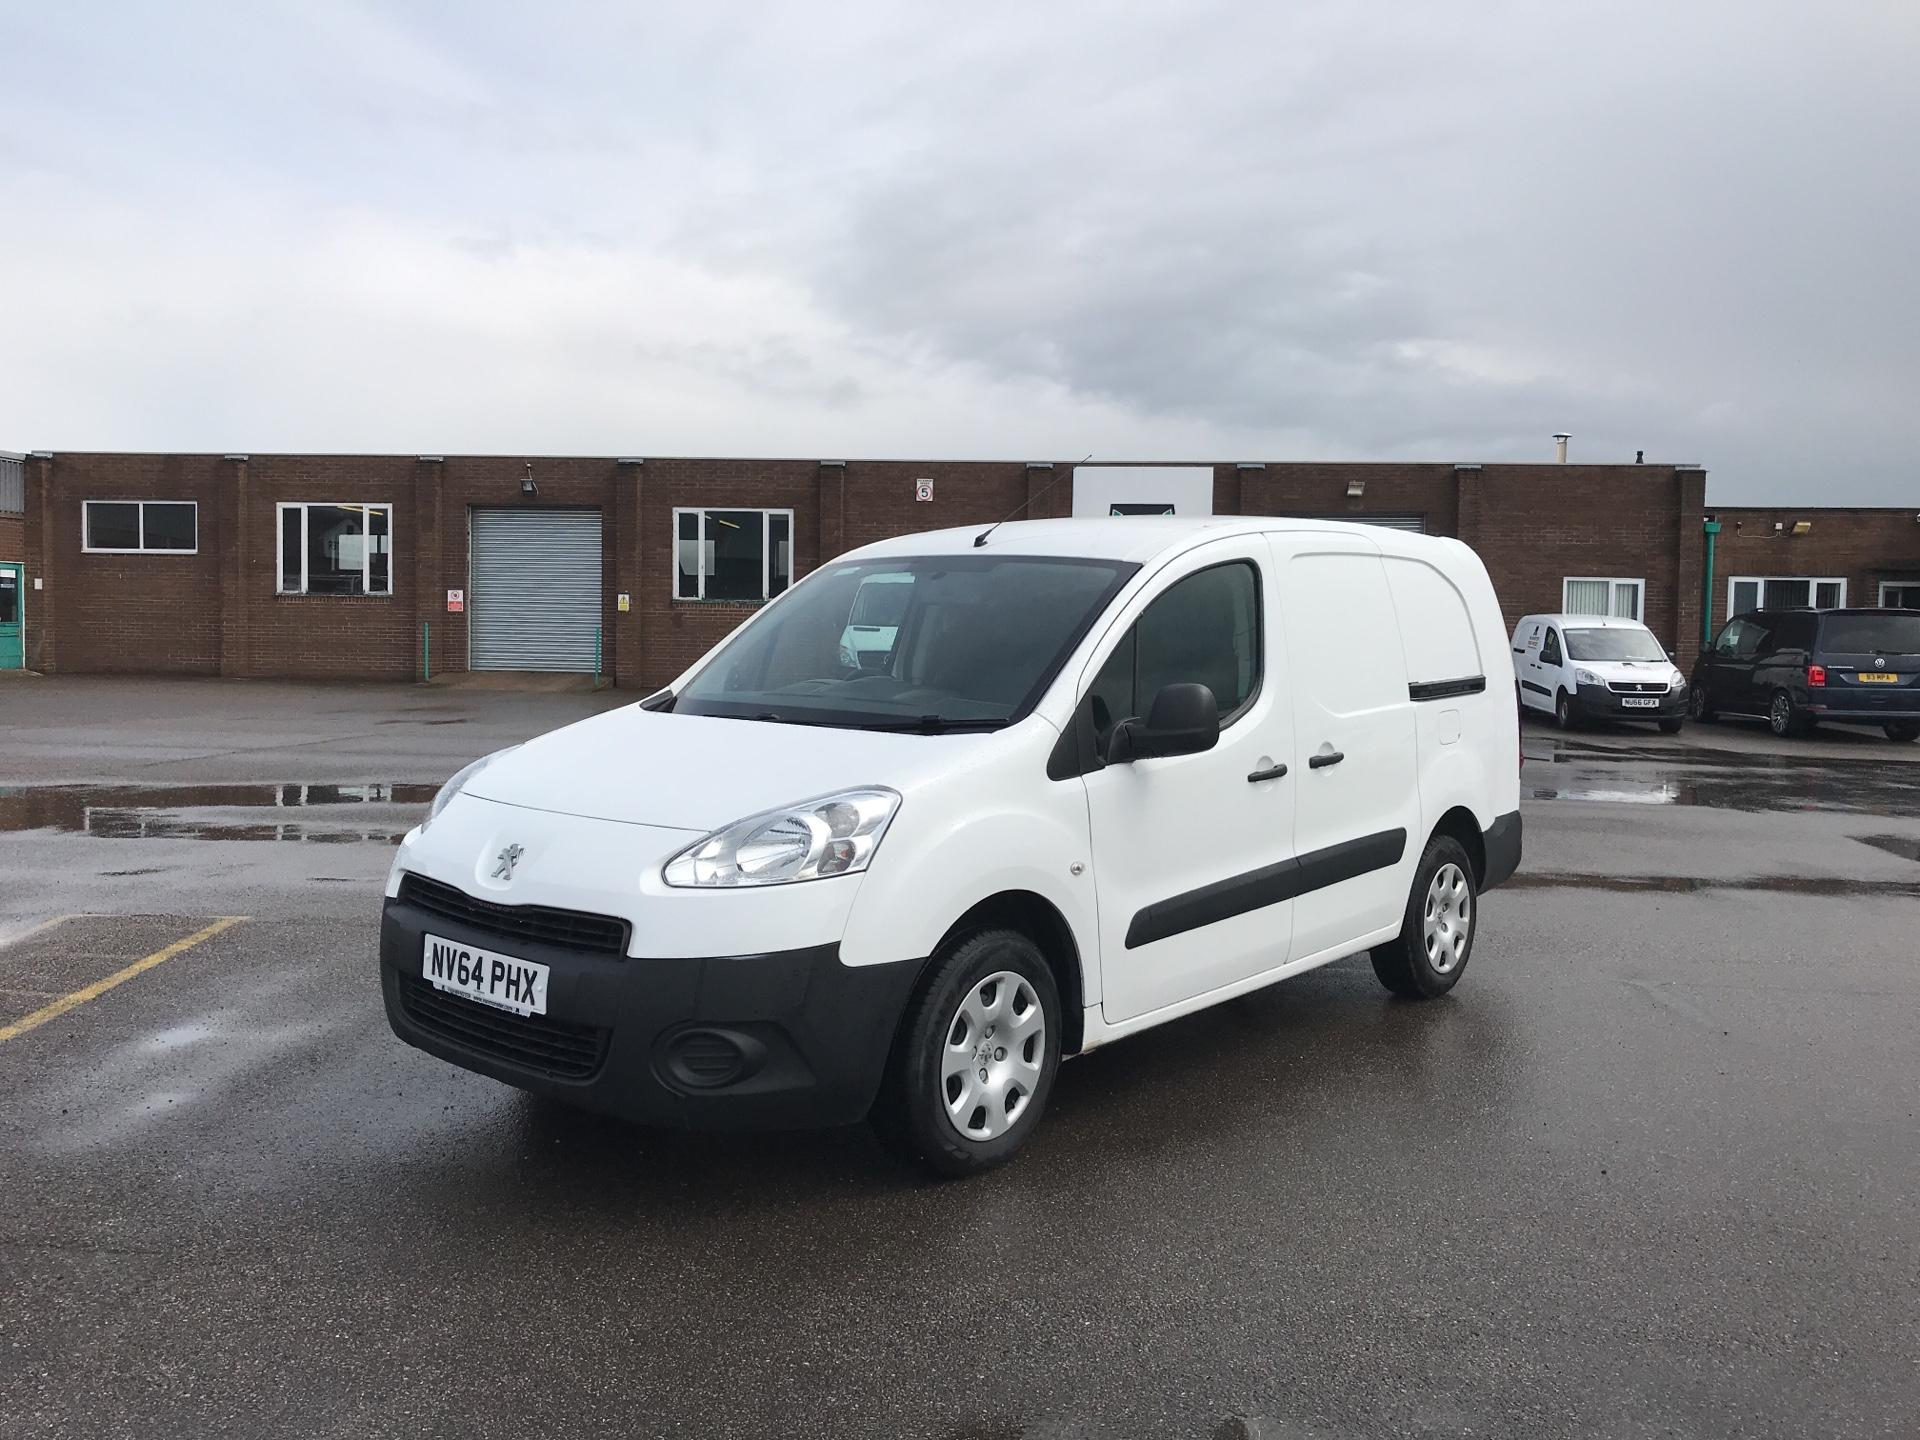 2015 Peugeot Partner L2 716 1.6 92PS CREW VAN EURO 5 (NV64PHX) Thumbnail 7